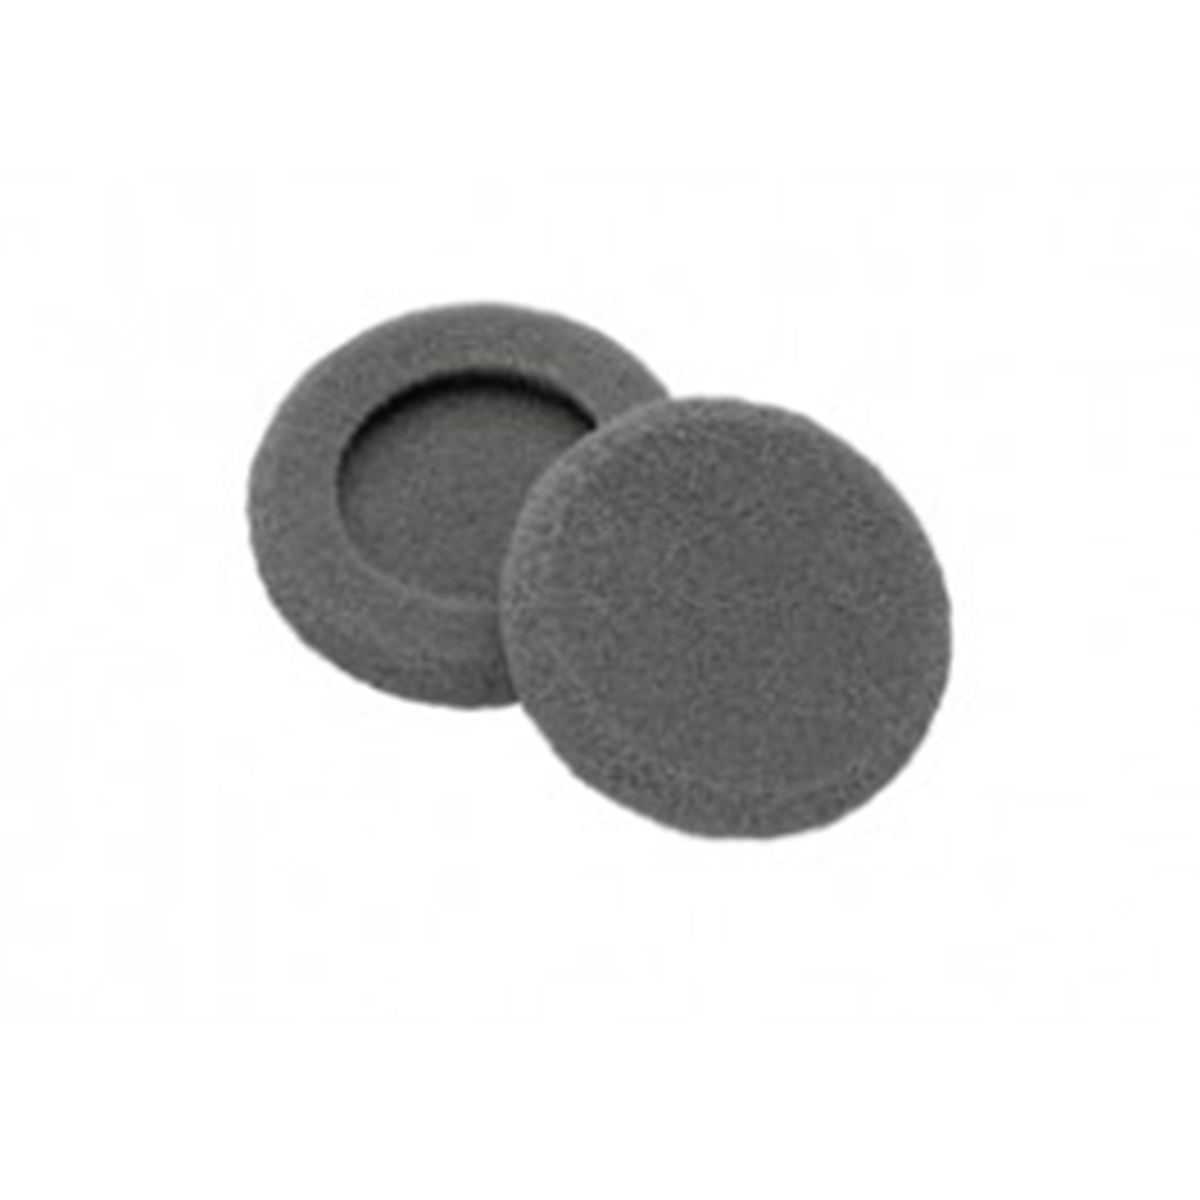 Plantronics 15729-05 Spare Ear Cushion Pack of 2